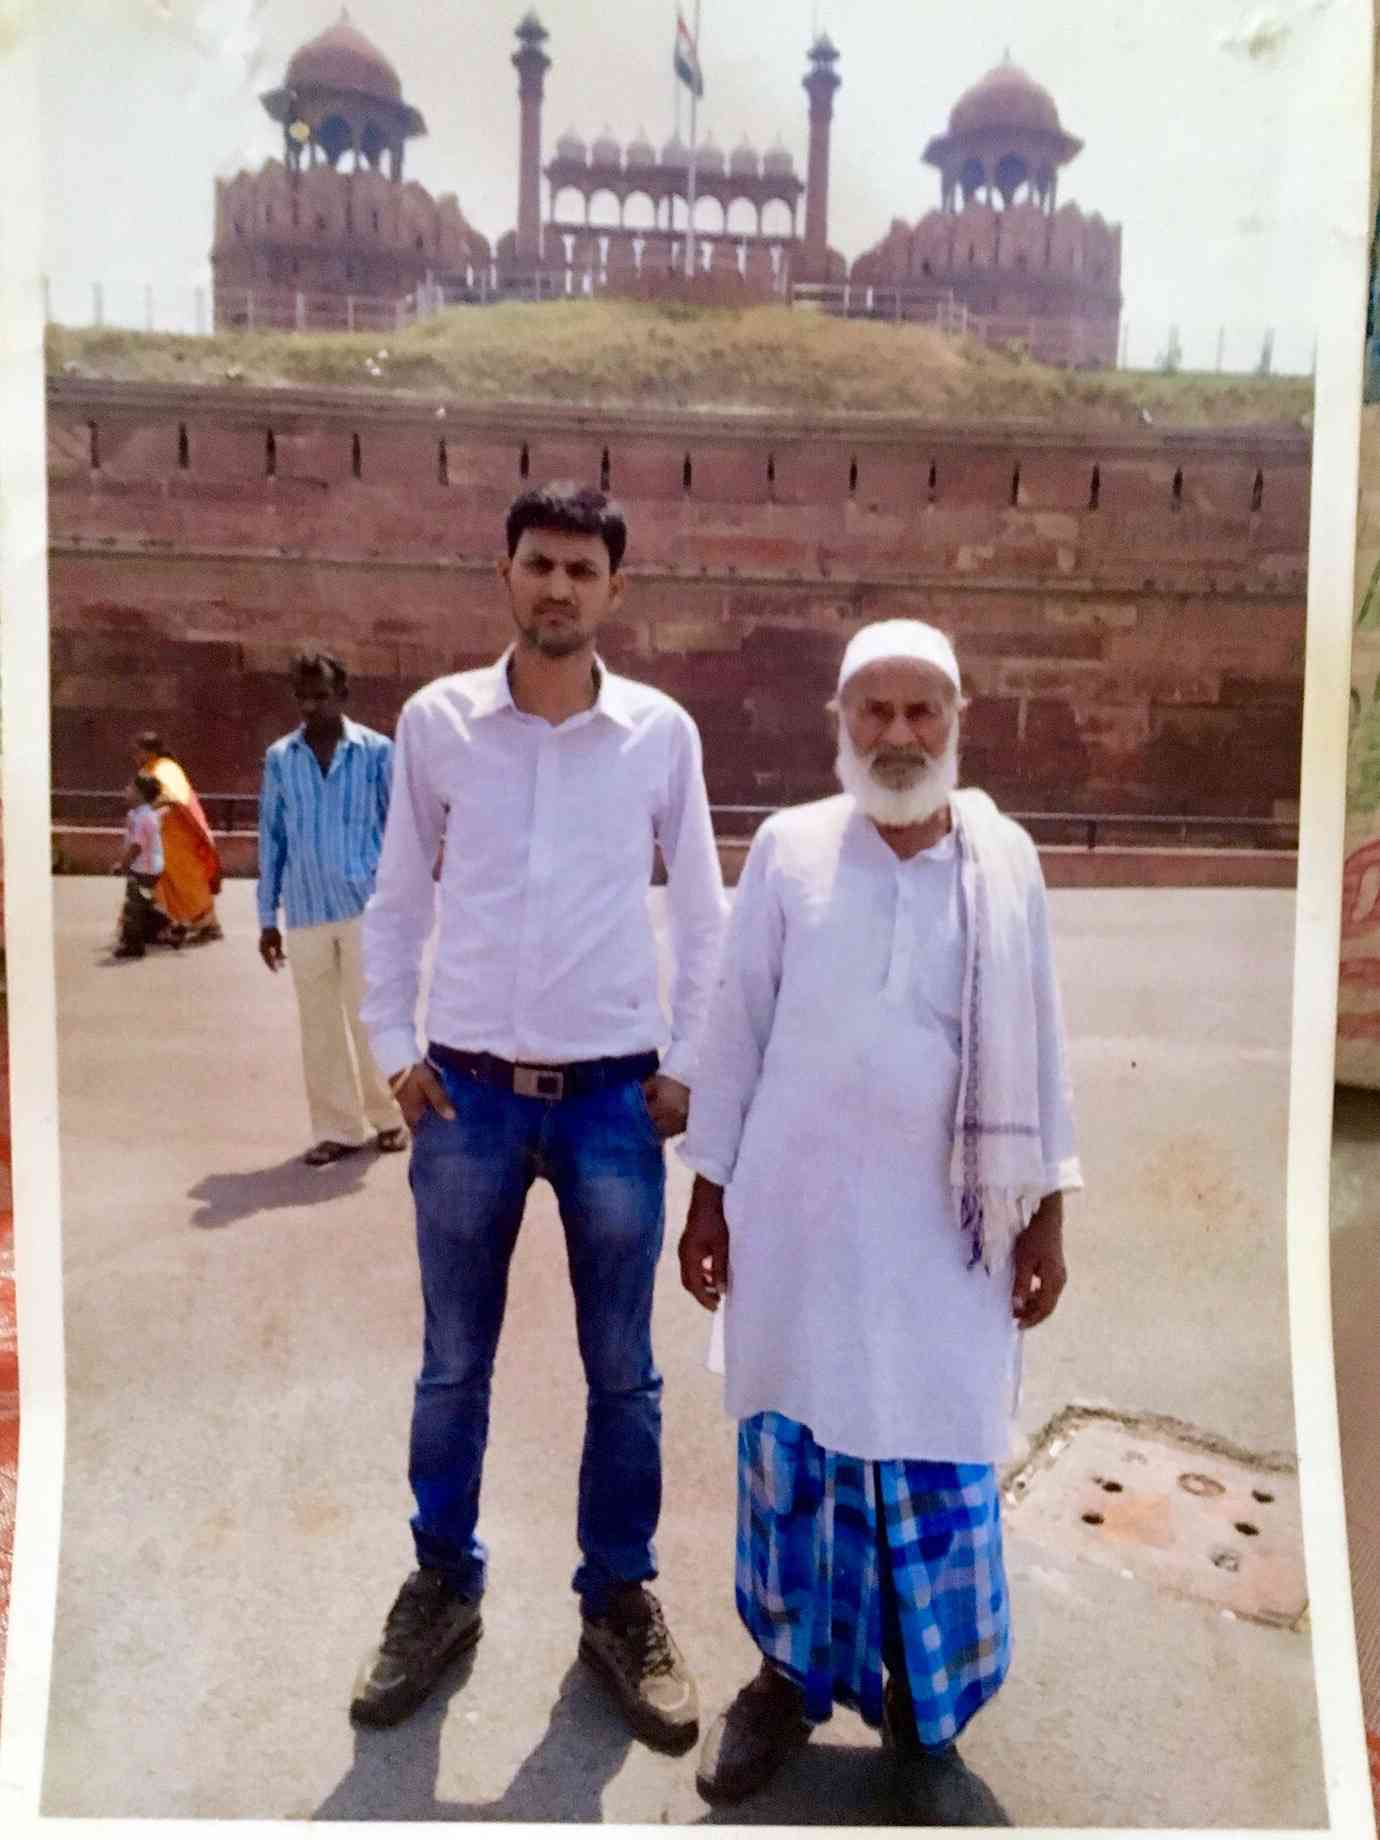 Zainul Ansari (right) was lynched in Sitamarhi when people in a Durga Puja procession targeted him simply because he was a visibly Muslim man.